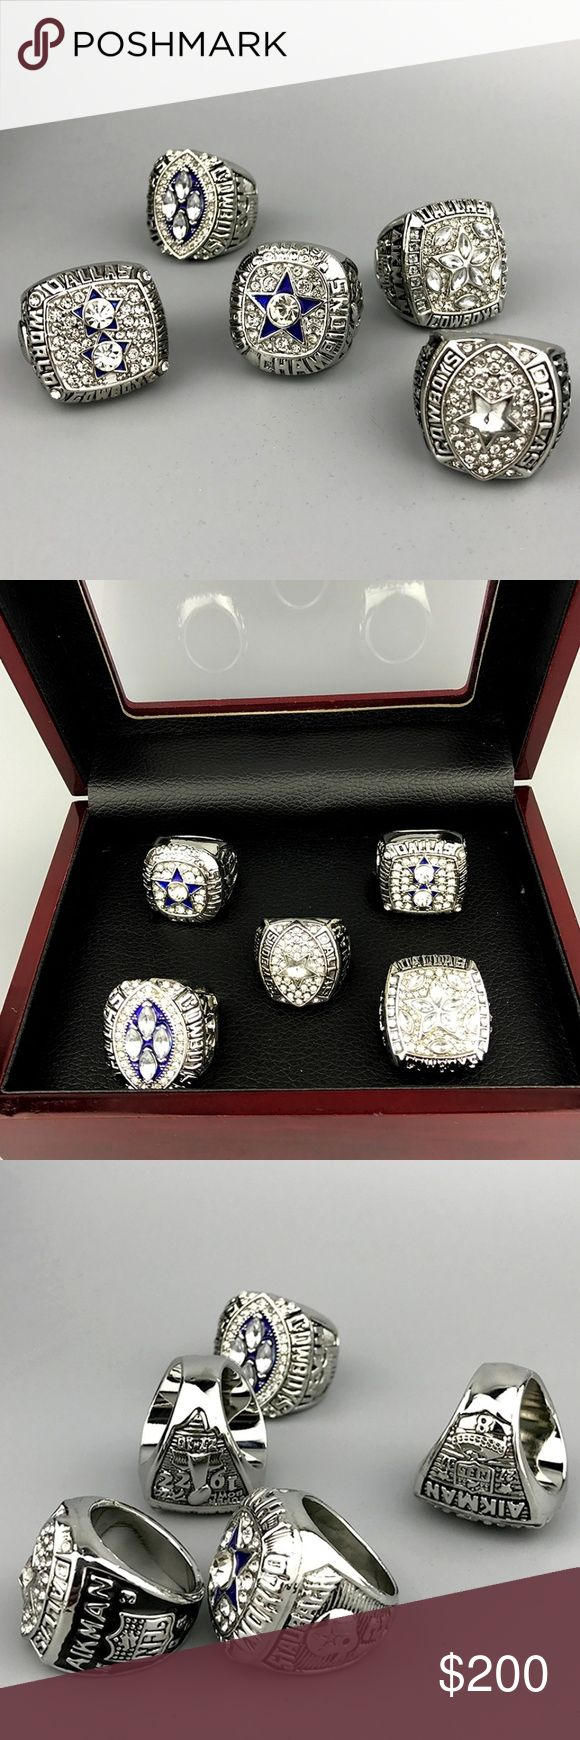 Dallas Cowboys Fan Edition Championship Ring Set 🏆🏈🏆 Perfect gift for the Cowboys fan in your life. This set is silver with exquisite cubic zirconias. One for each of the Cowboys 5 championships. Cimes with the wooden disay box to display when not being worn. Perfect for game day especially when paired with a jersey.🏆🏈🏆 Accessories Jewelry